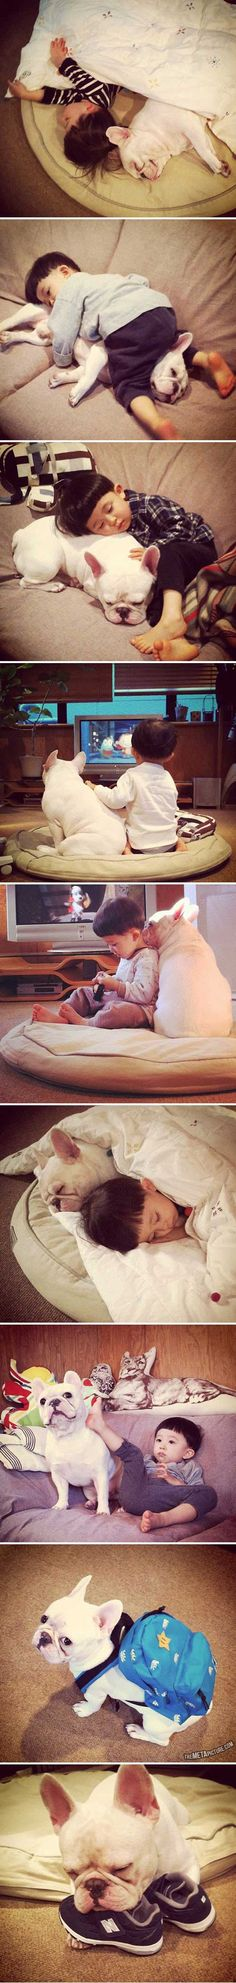 A boy and his dog <3